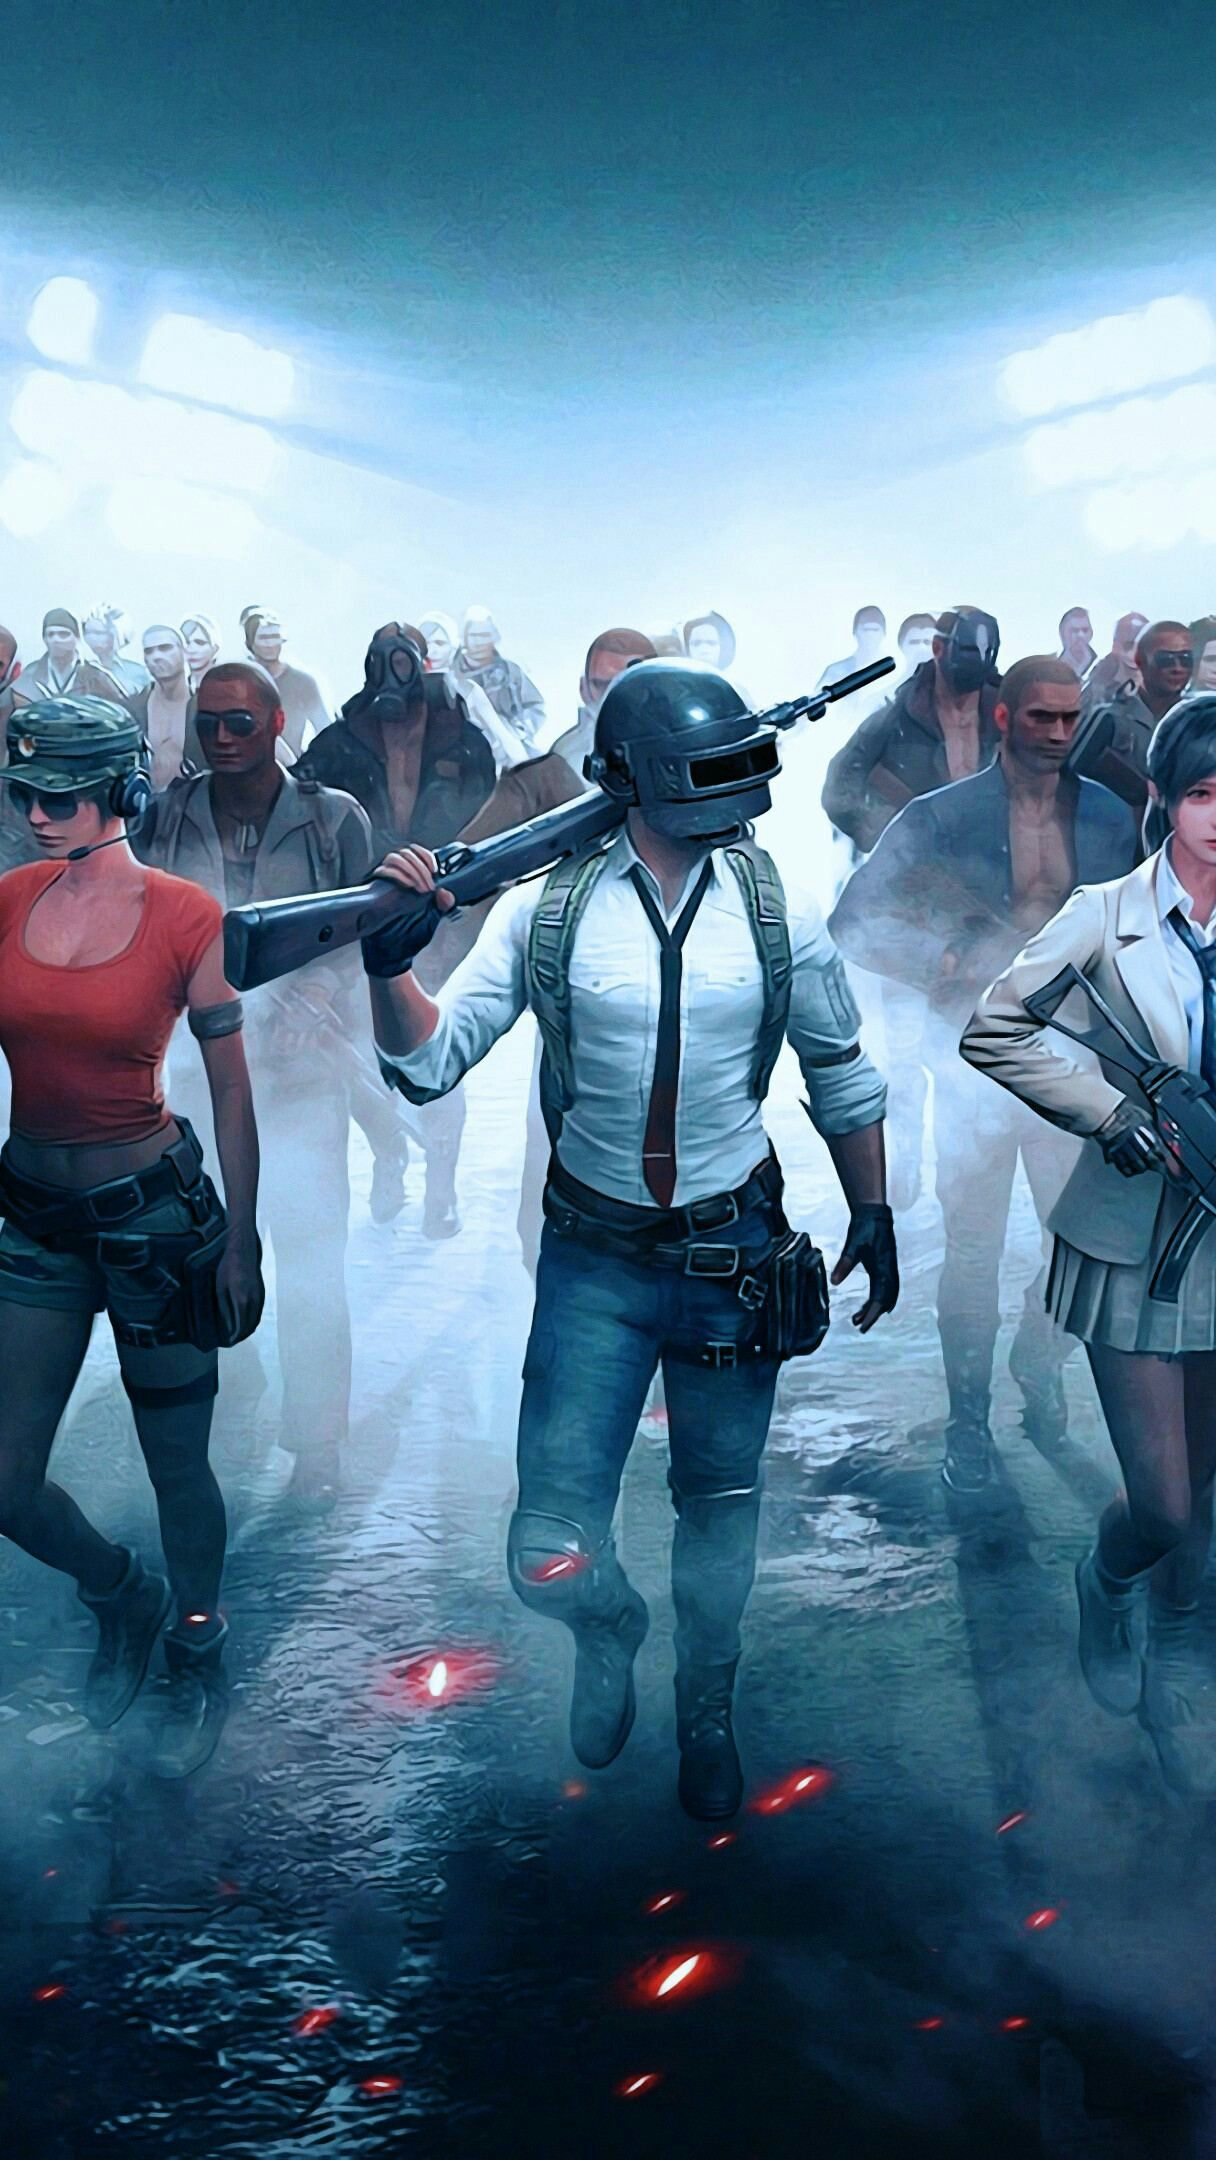 Pin by Mohankhopade on PUBG WALLPEPAR (With images ...